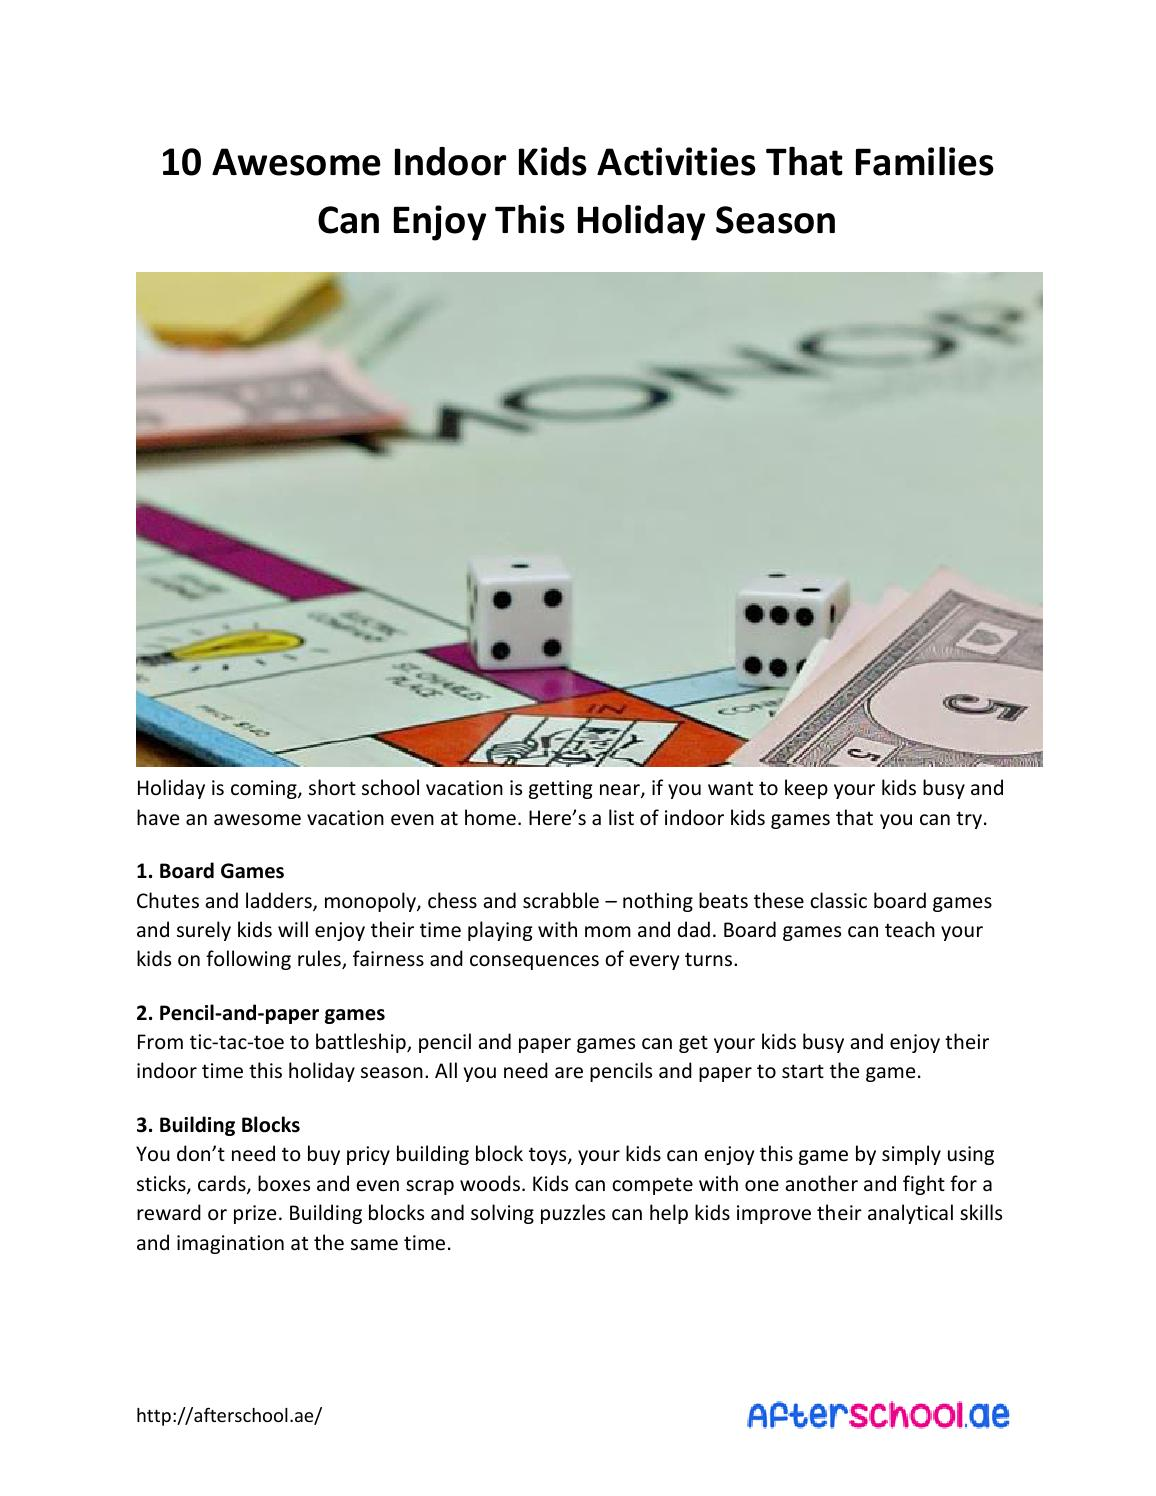 10 Awesome Indoor Kids Activities That Families Can Enjoy This Block Diagram Games Holiday Season By Jane Arellano Issuu